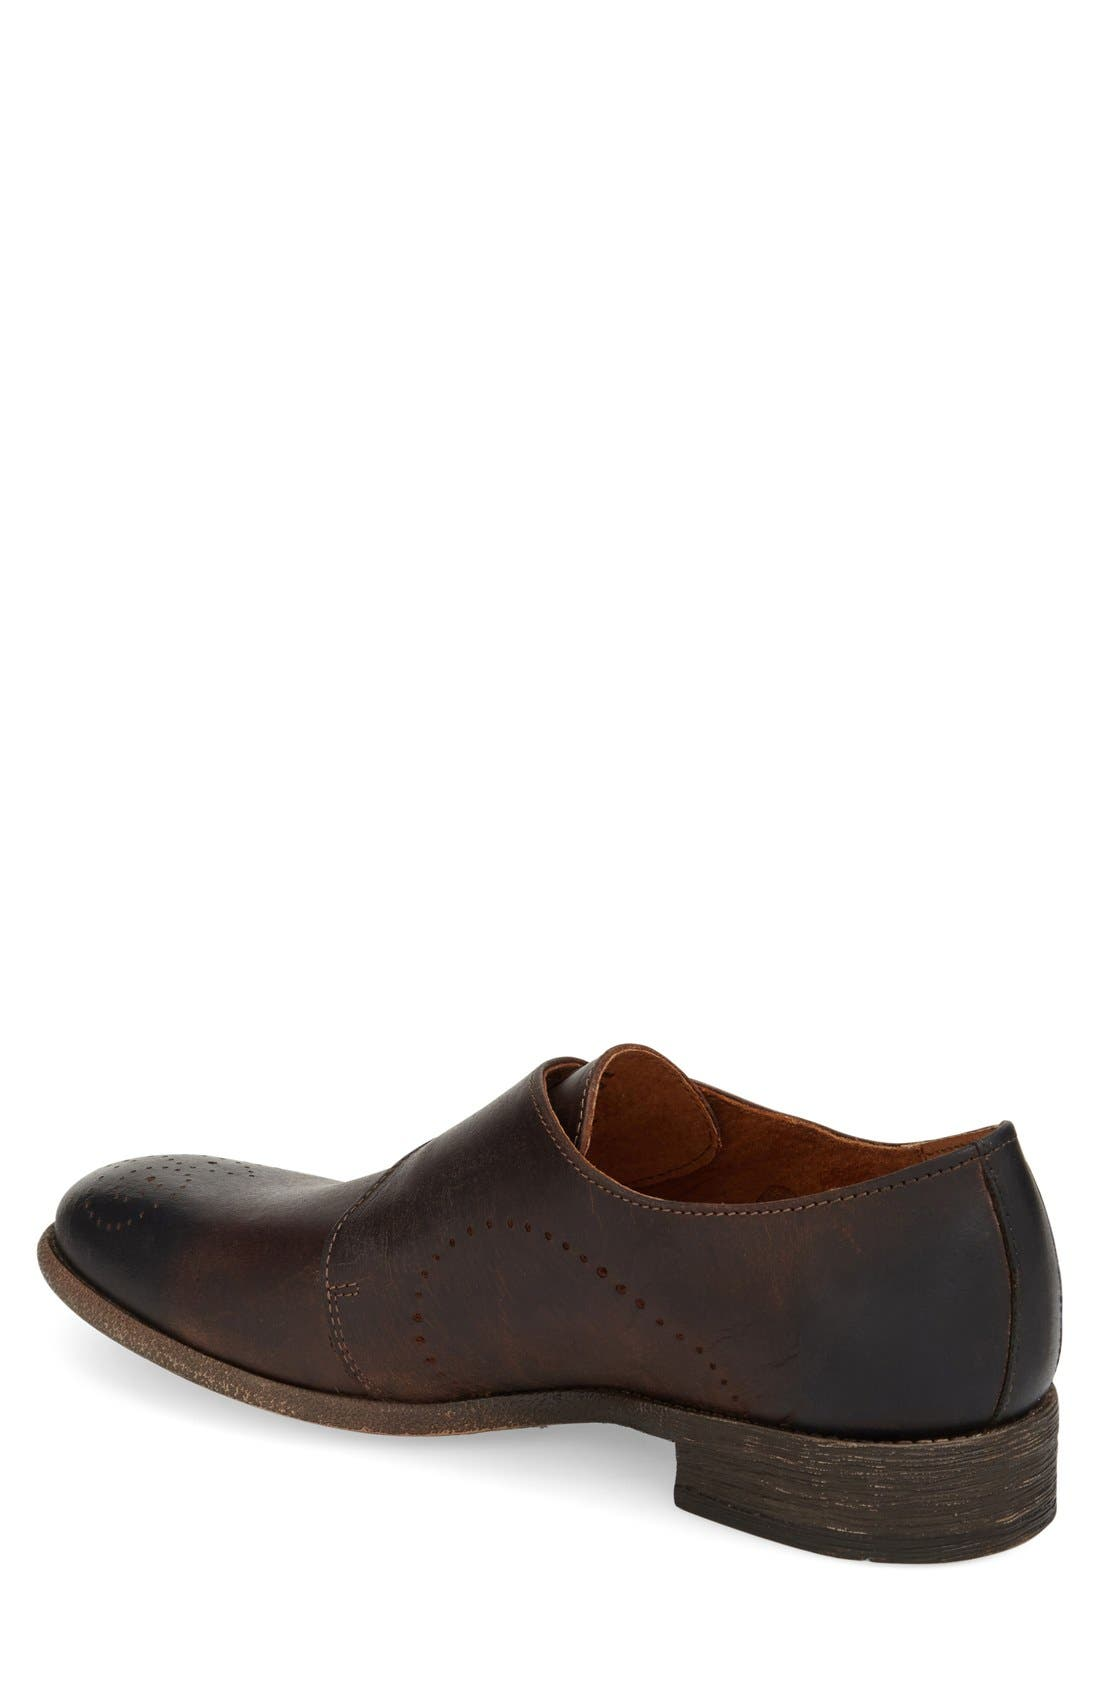 'Montana' Monk Strap Shoe,                             Alternate thumbnail 2, color,                             201